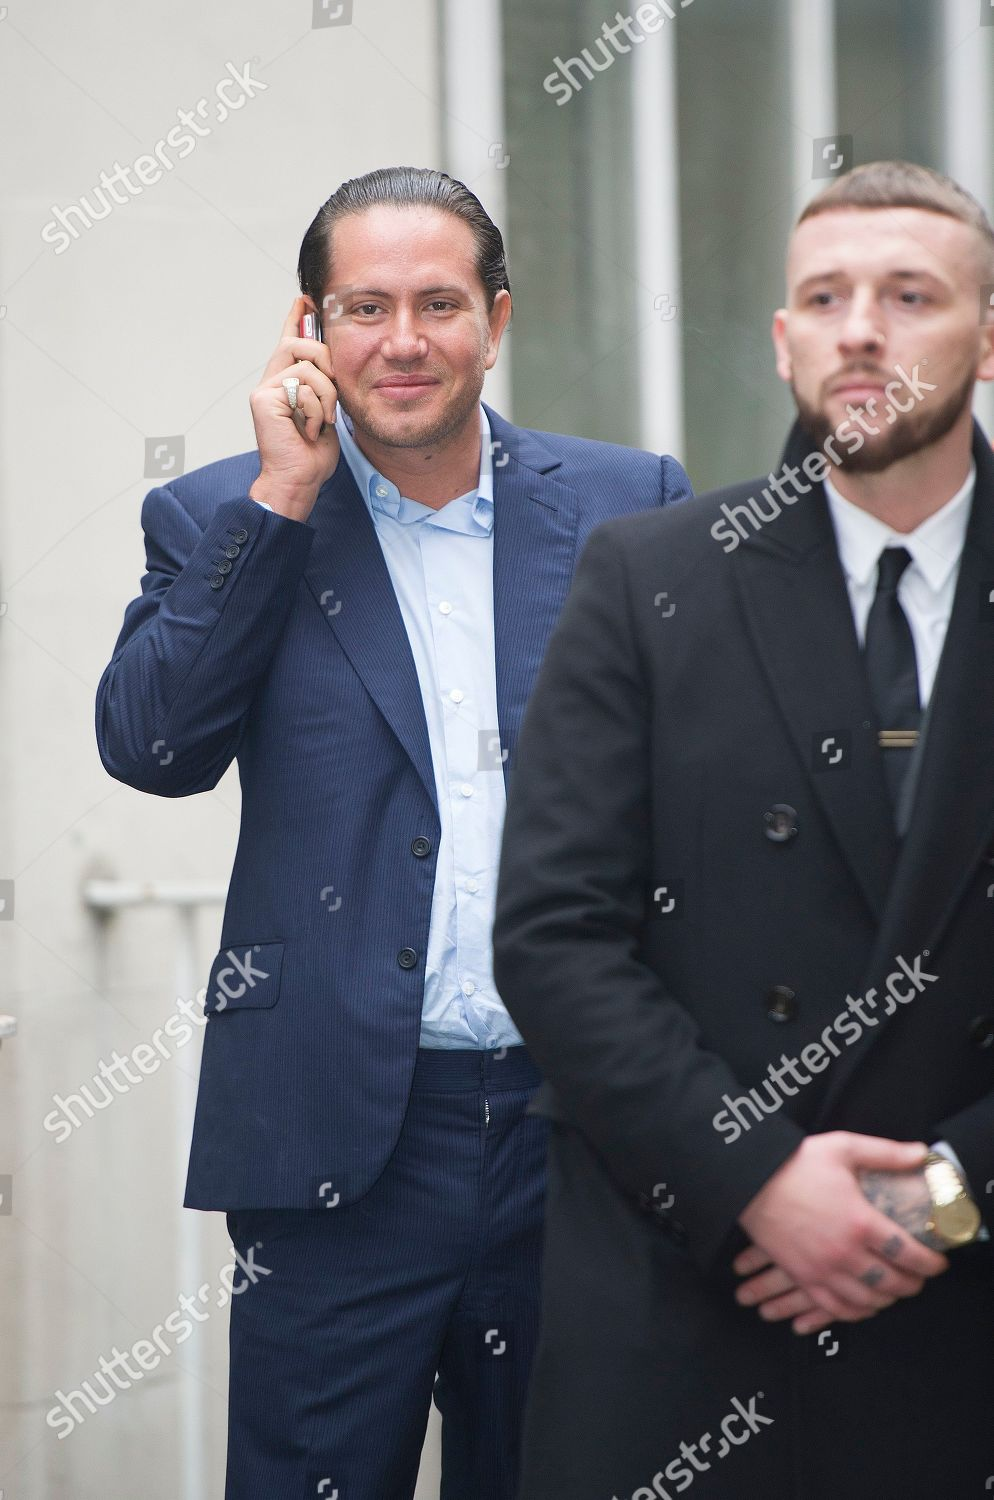 James Stunt Arrives Family Court Holborn London Editorial Stock